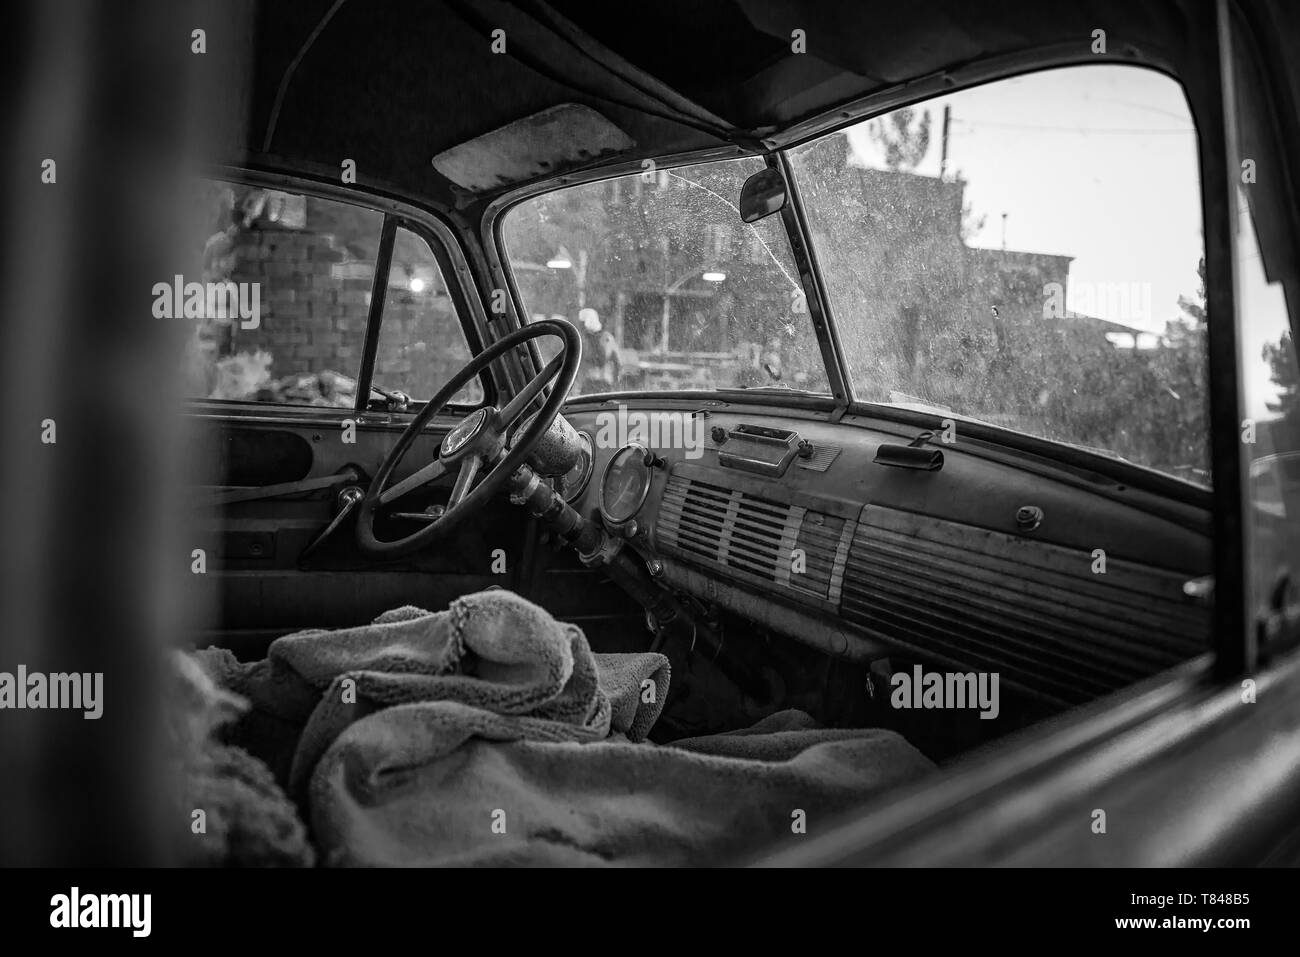 Vintage car front seat, black and white image, Nelson, Nevada, USA - Stock Image